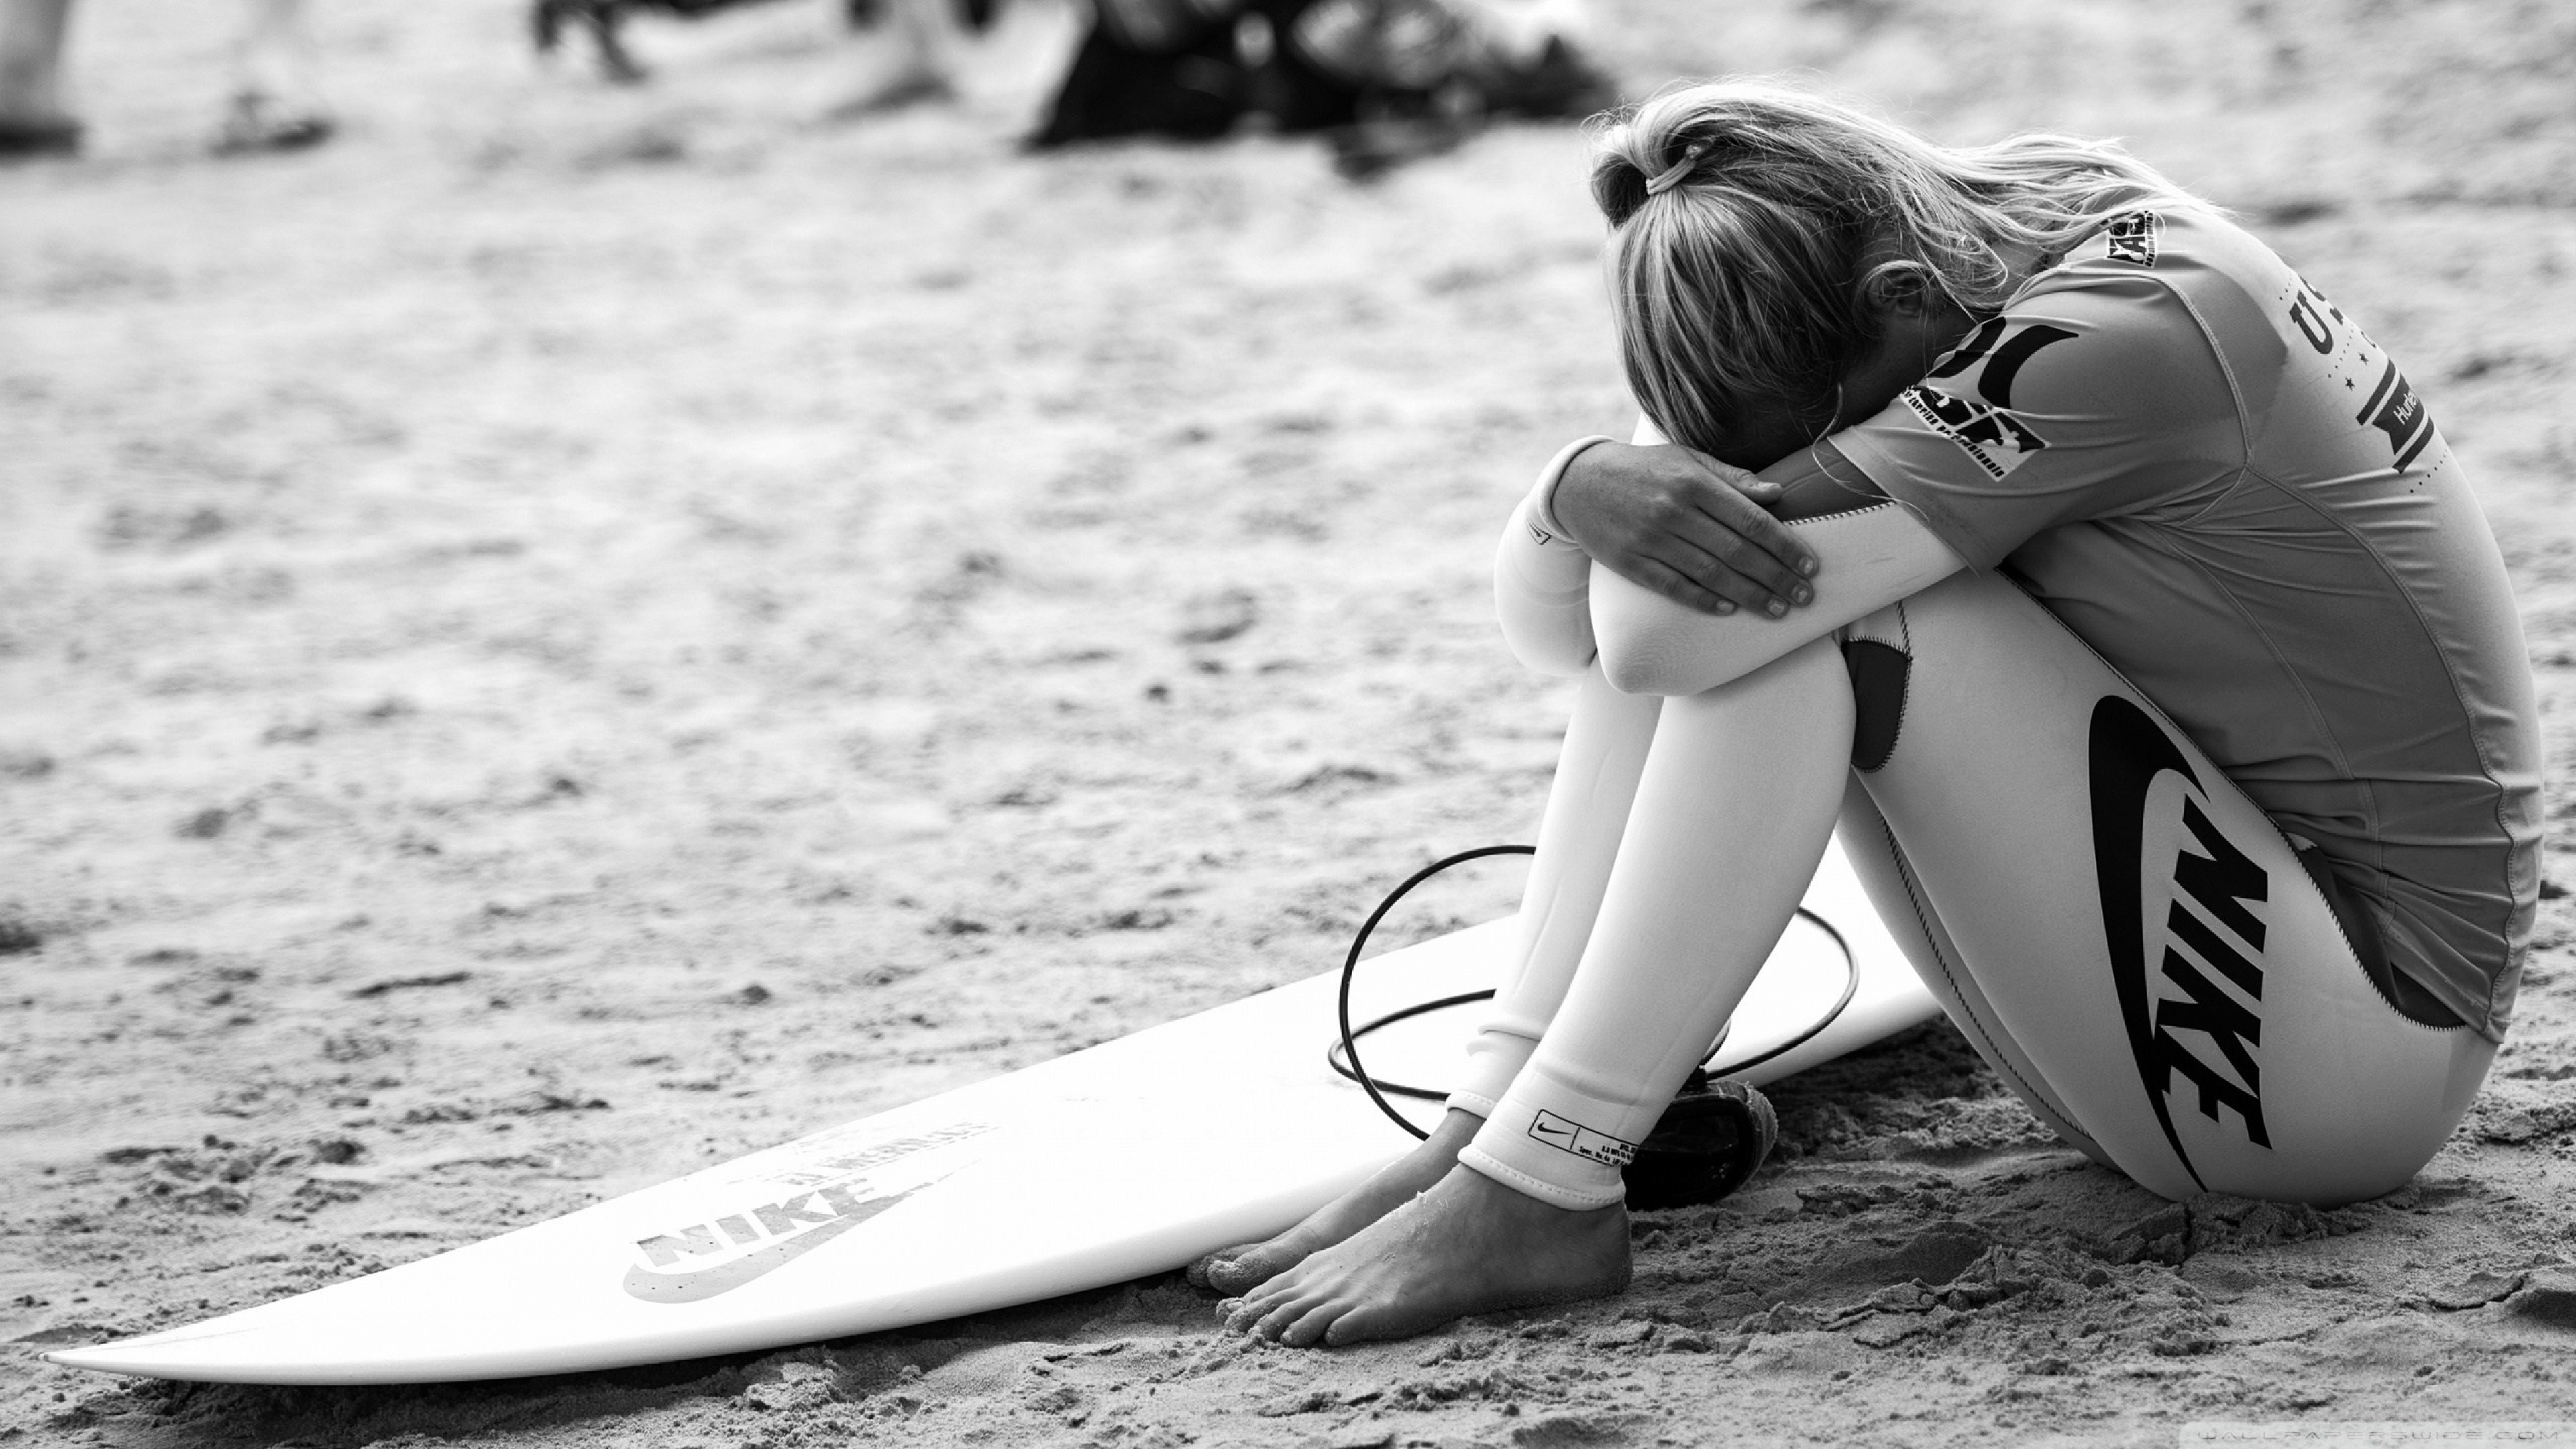 surfing girl, hd girls, 4k wallpapers, images, backgrounds, photos